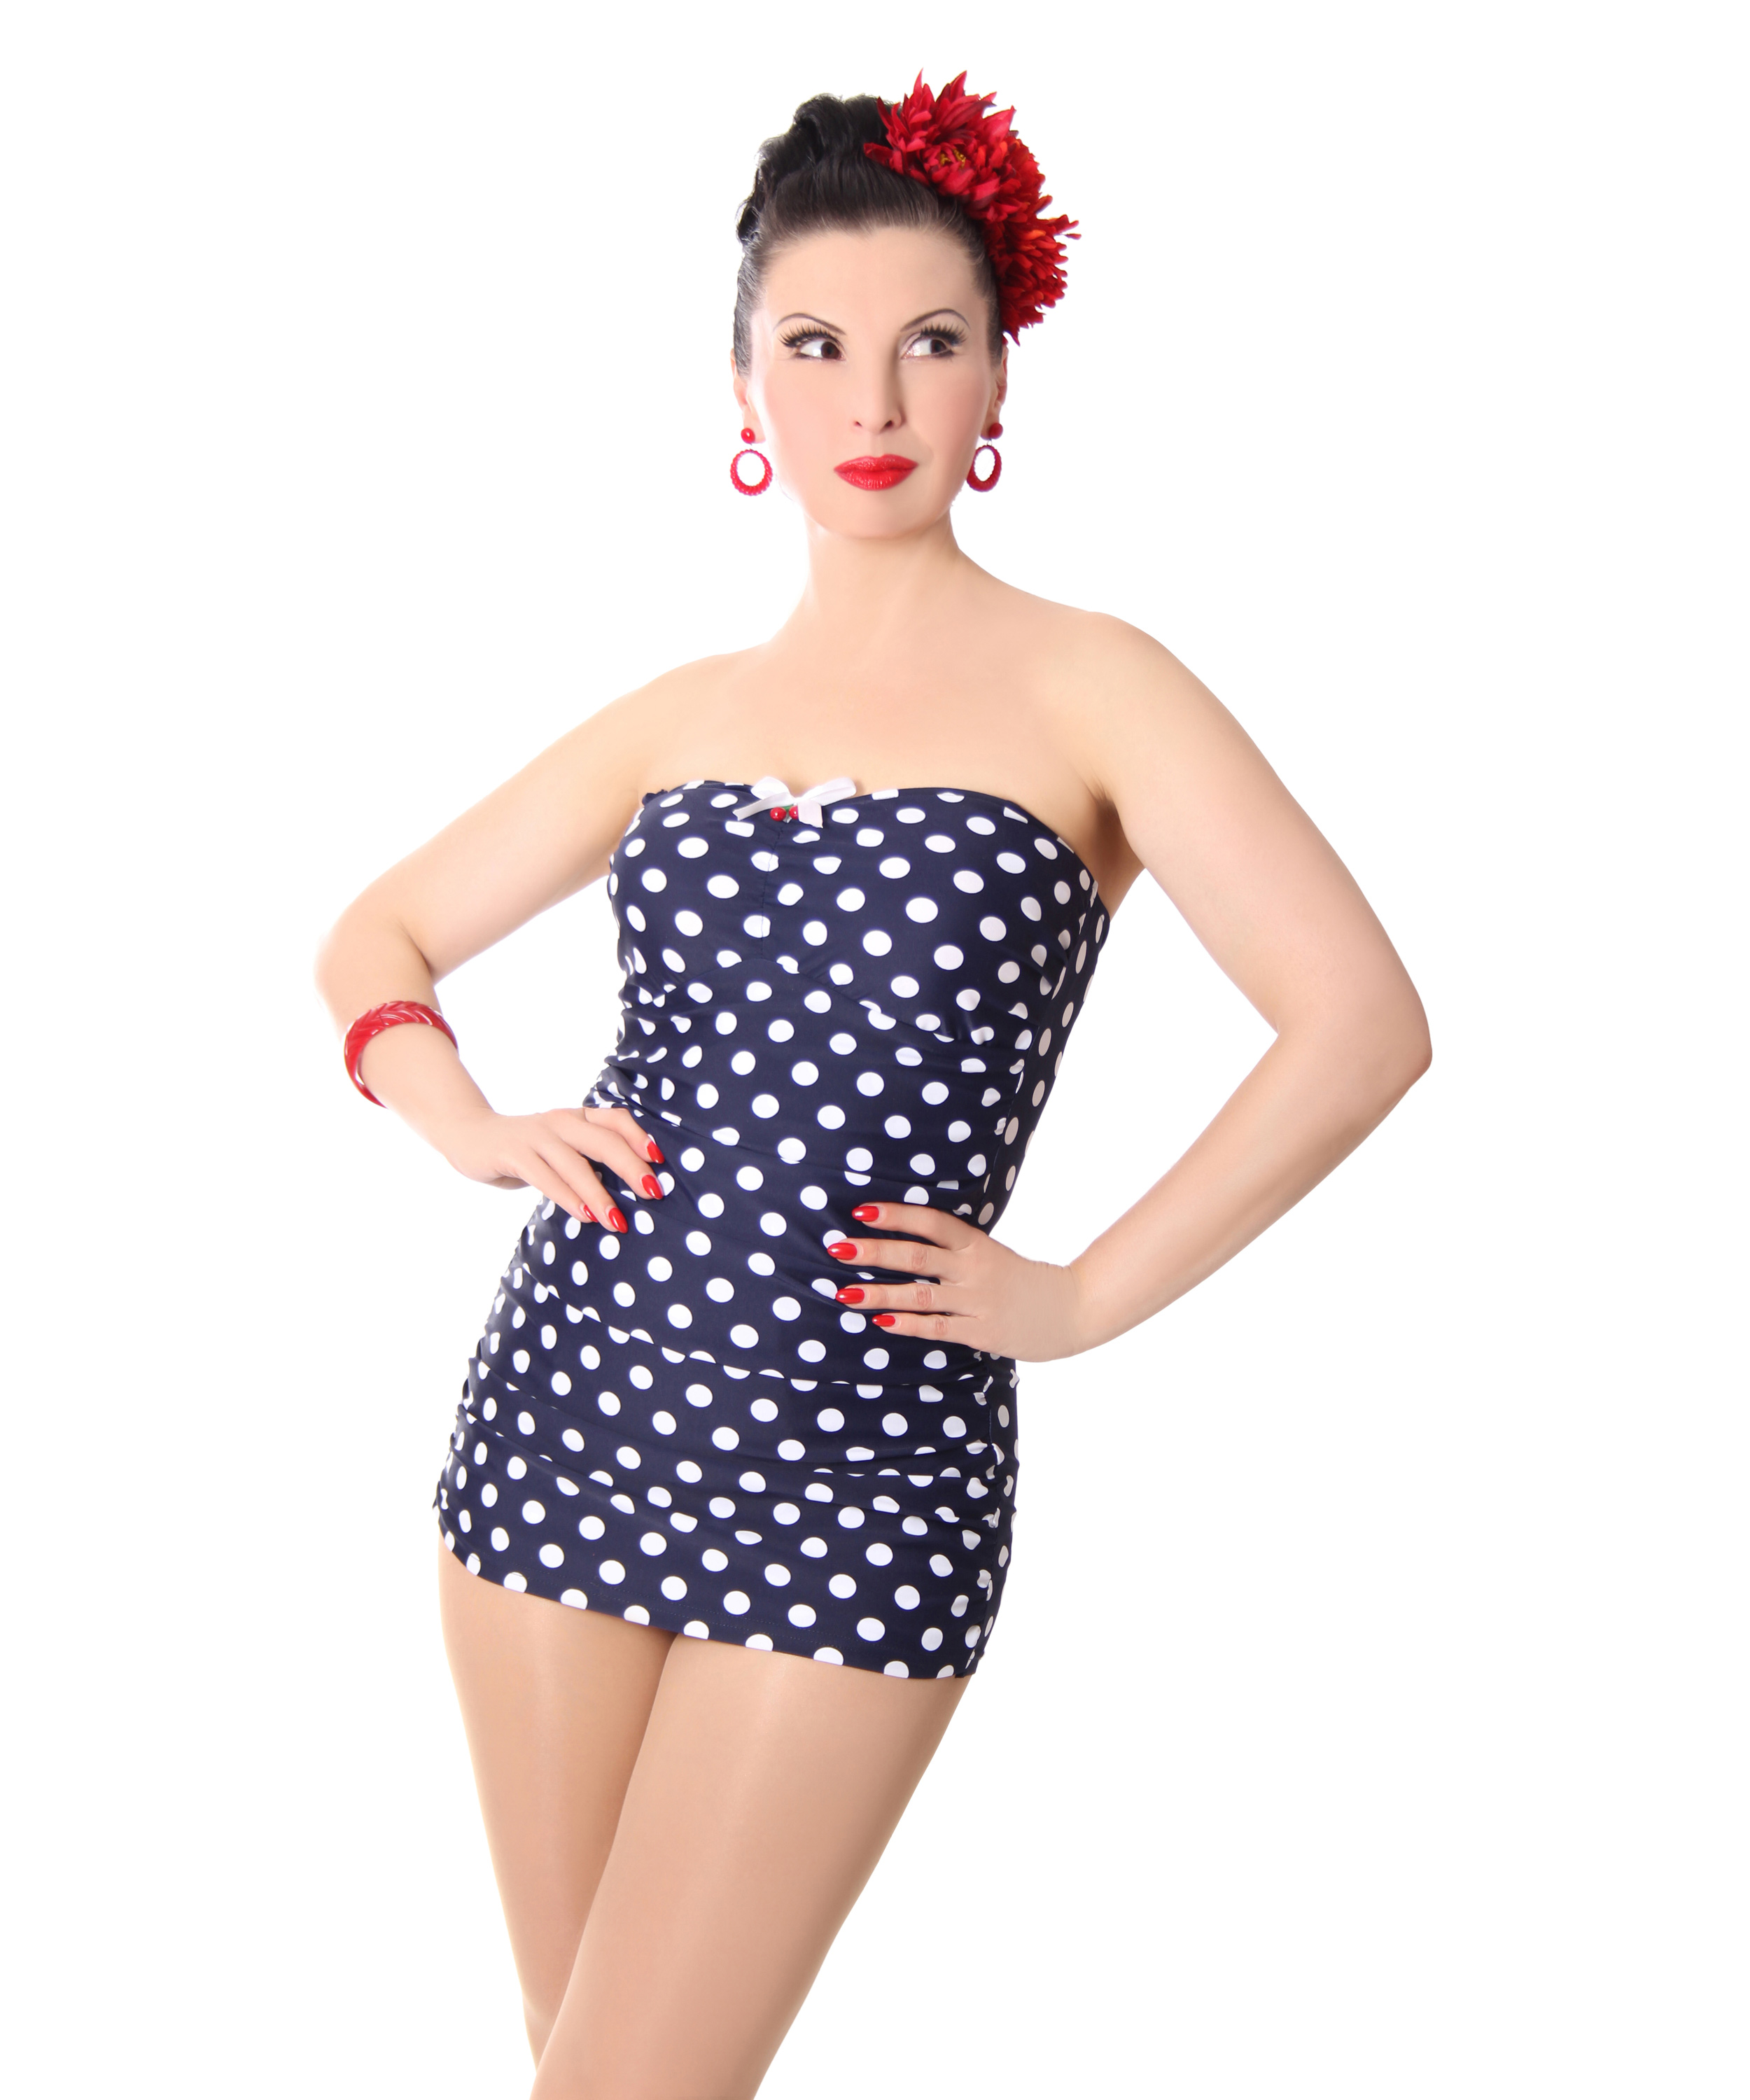 Marynn 50er Retro Polka Dots Pin Up Badeanzug V Sugarshock Frauen